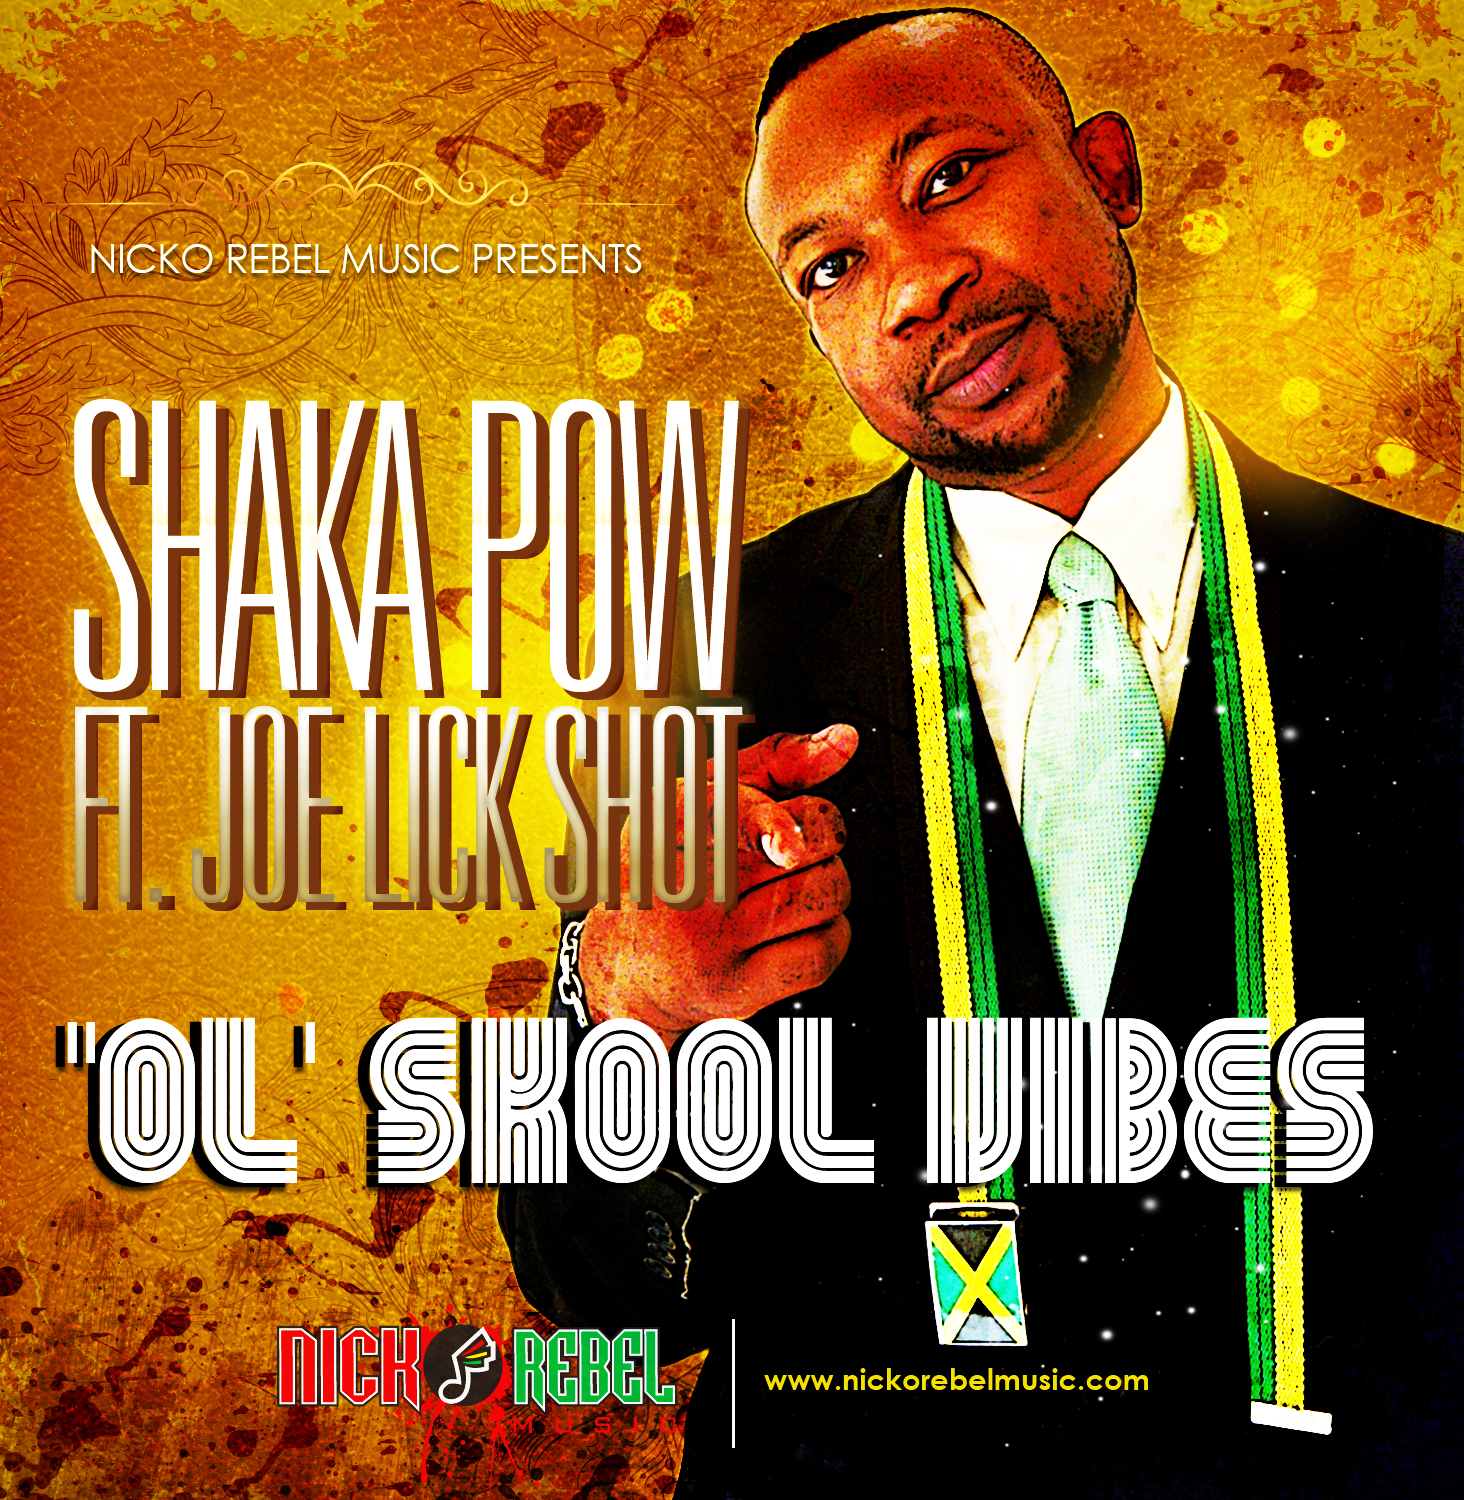 shaka-pow-ft-joe-lickshot-ol-skool-vibes-nicko-rebel-music-Cover-artwork